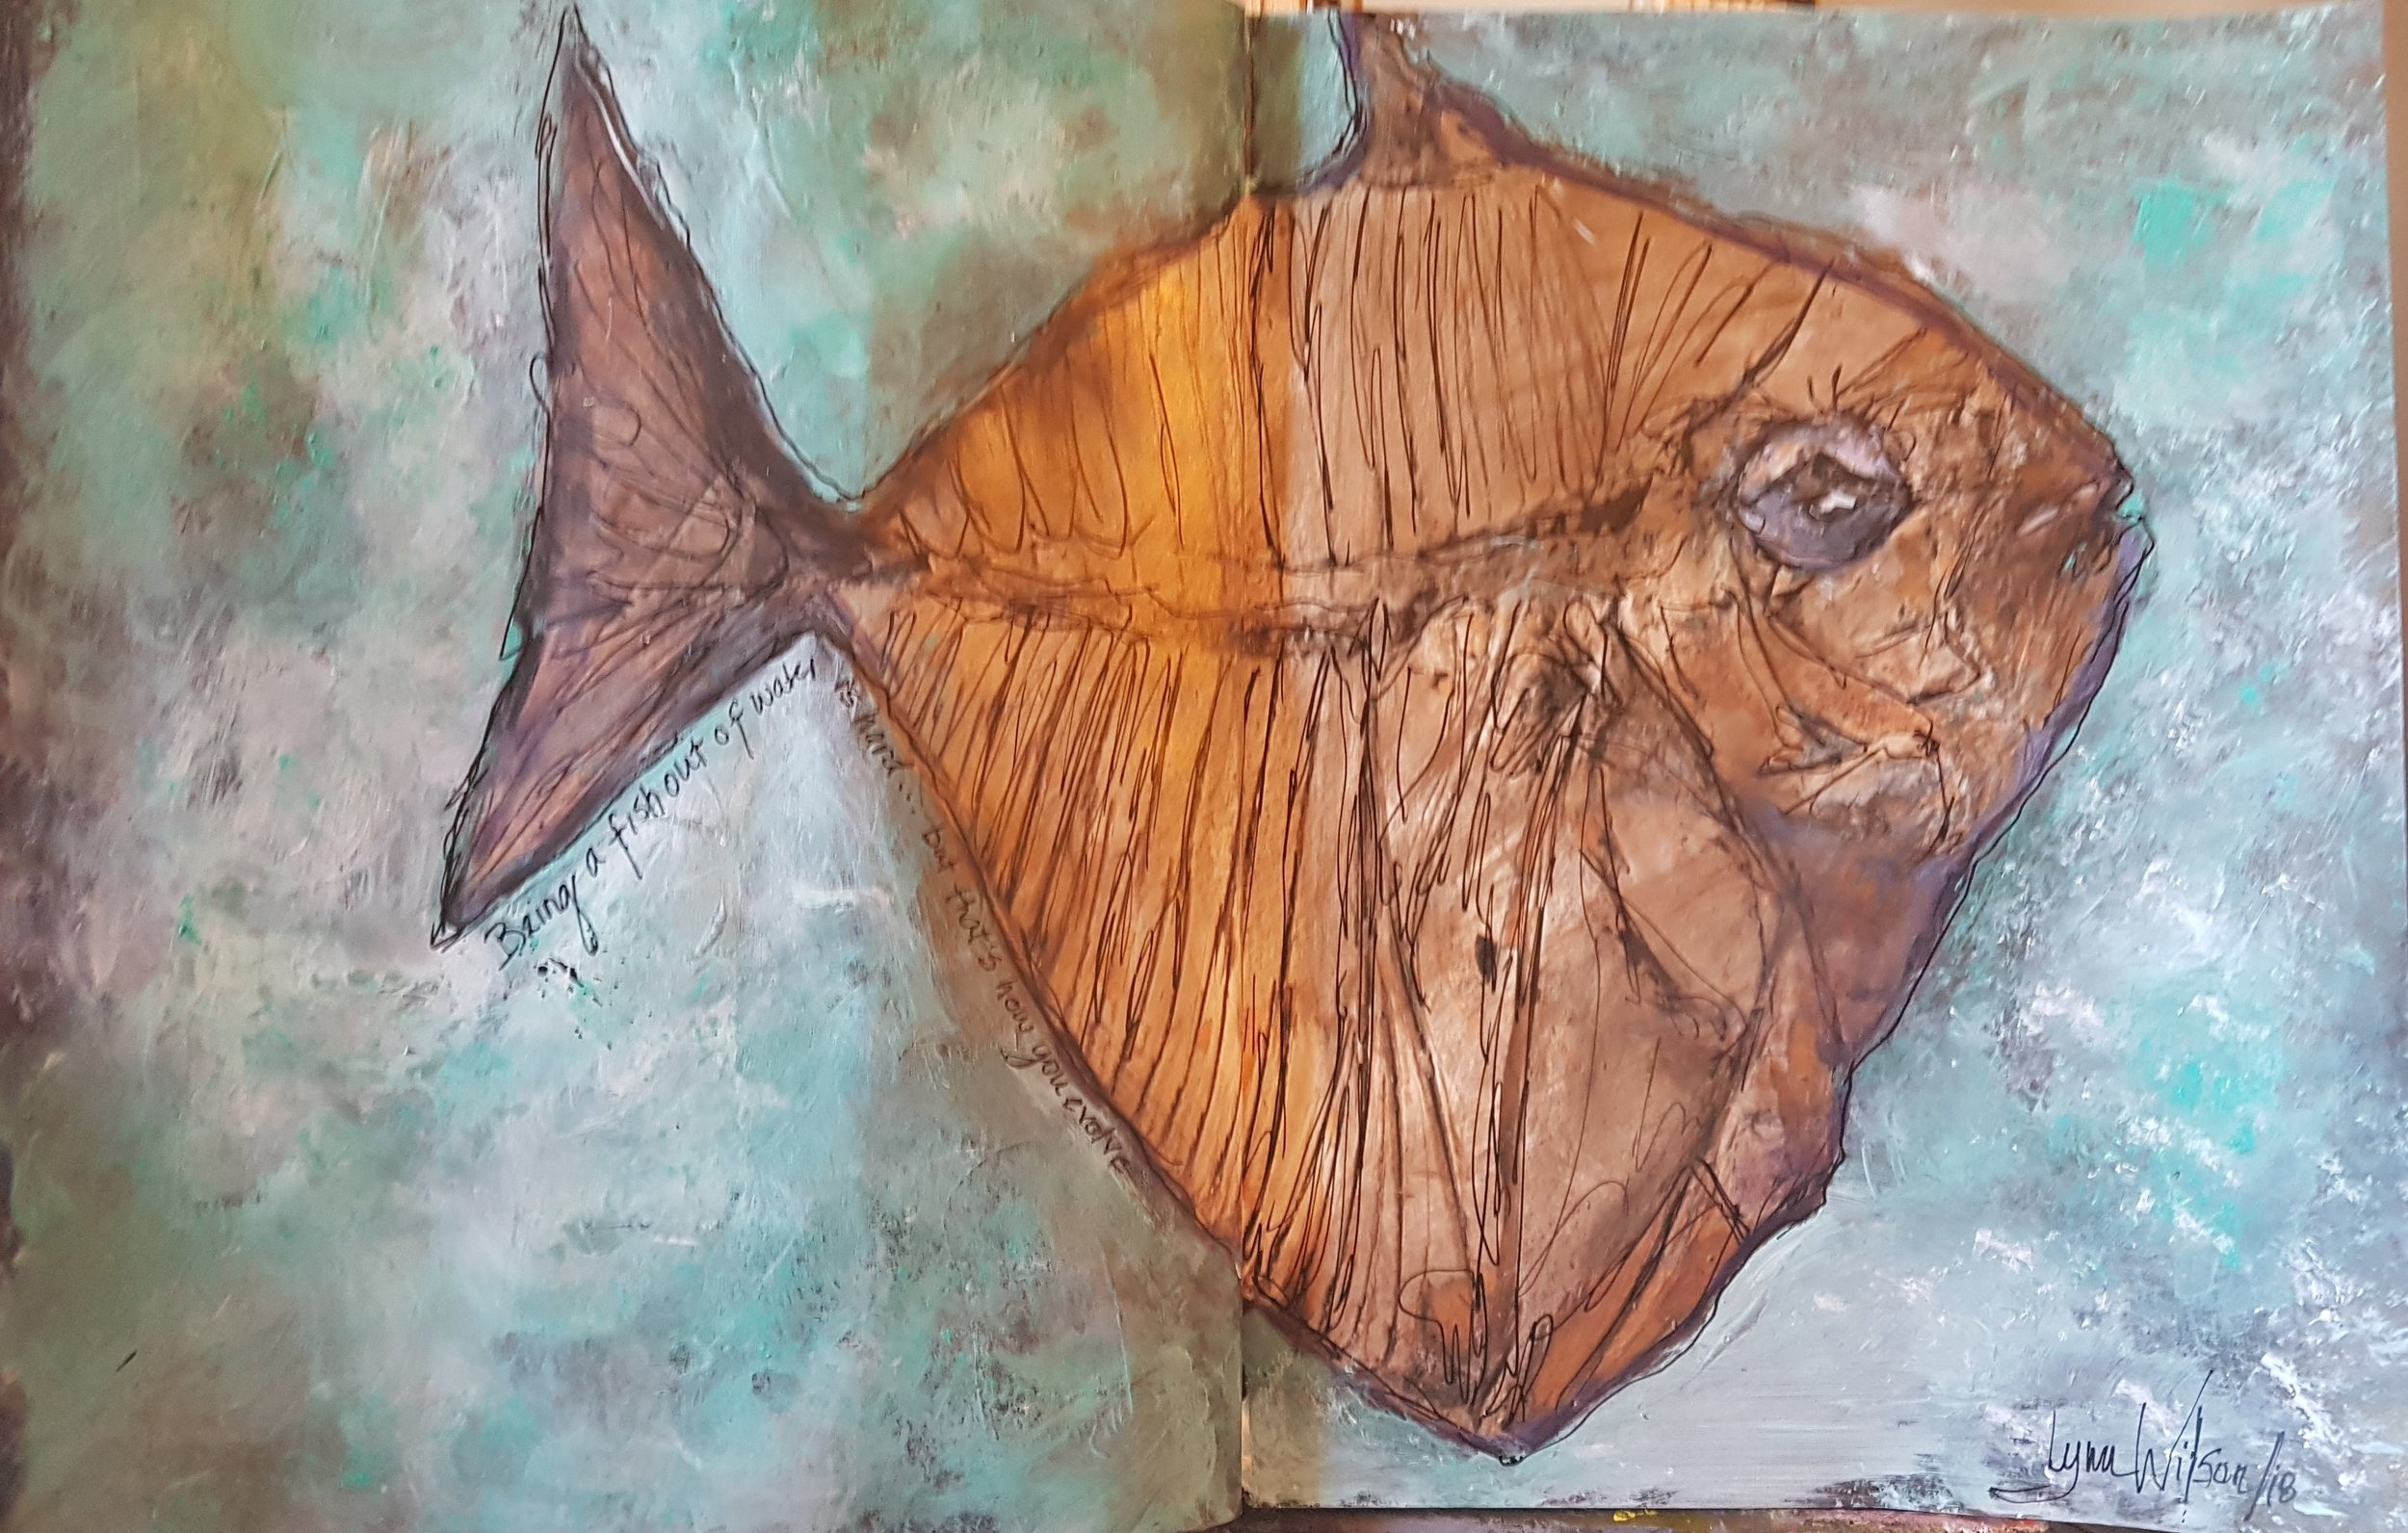 lynn wilson - Journal Two Being a fish out of water March 11 2018 full spread .jpg